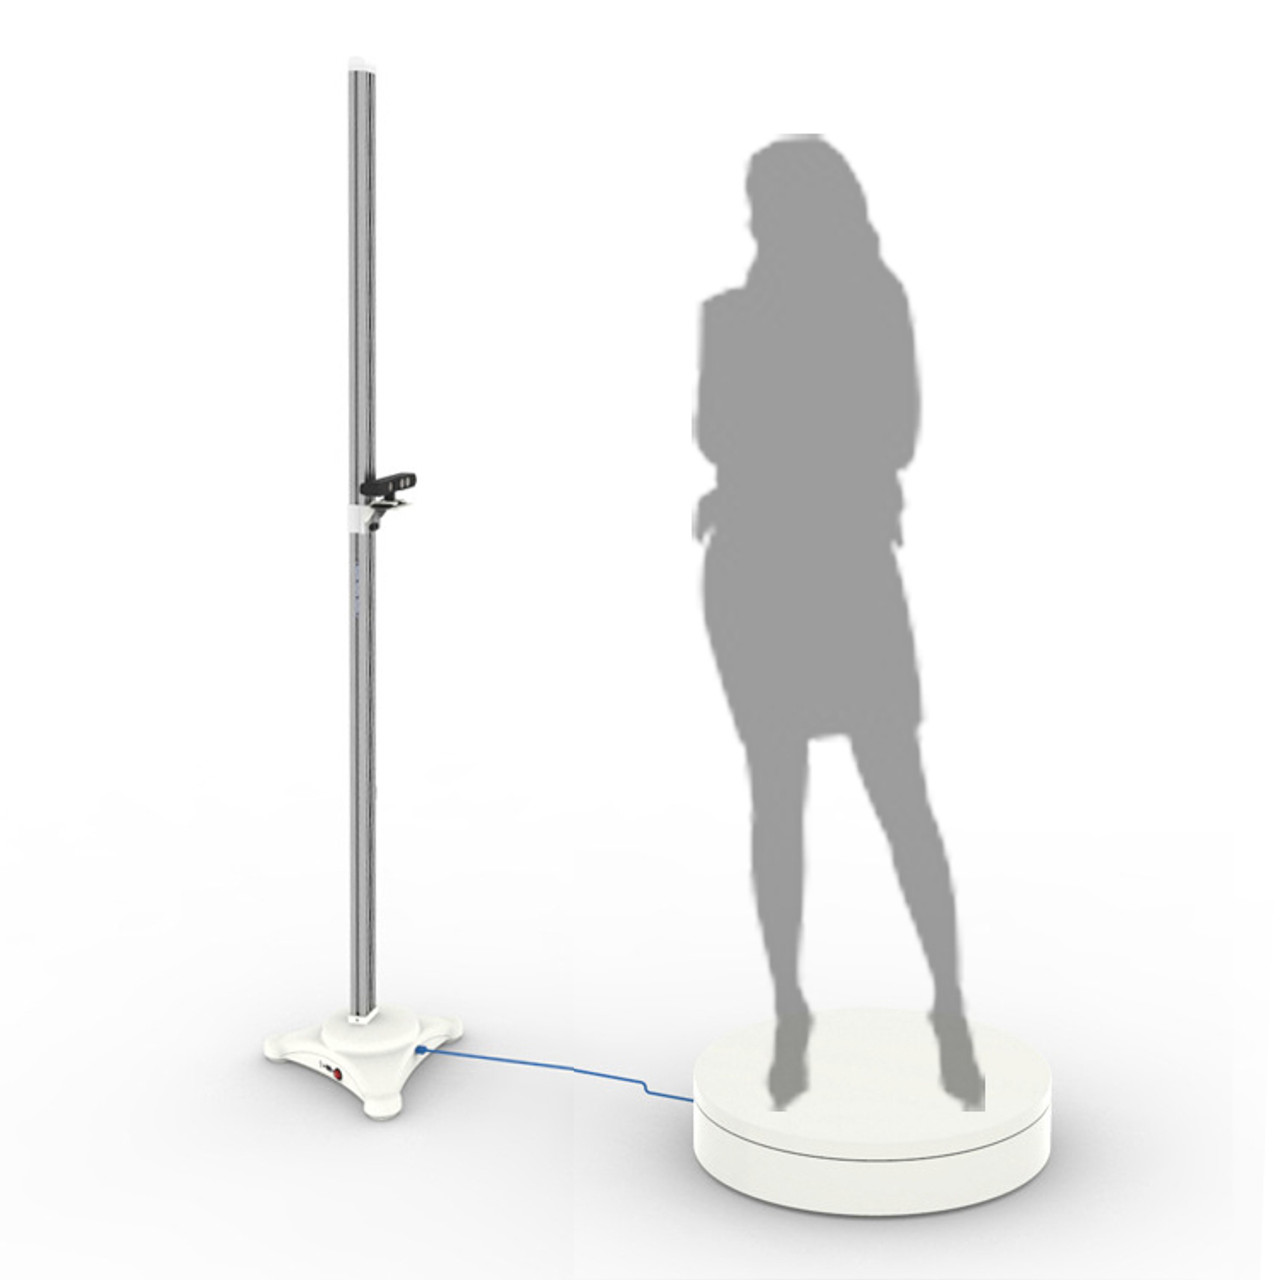 Full Body 3D Scanning Rig & Scanner System w/ Turntable